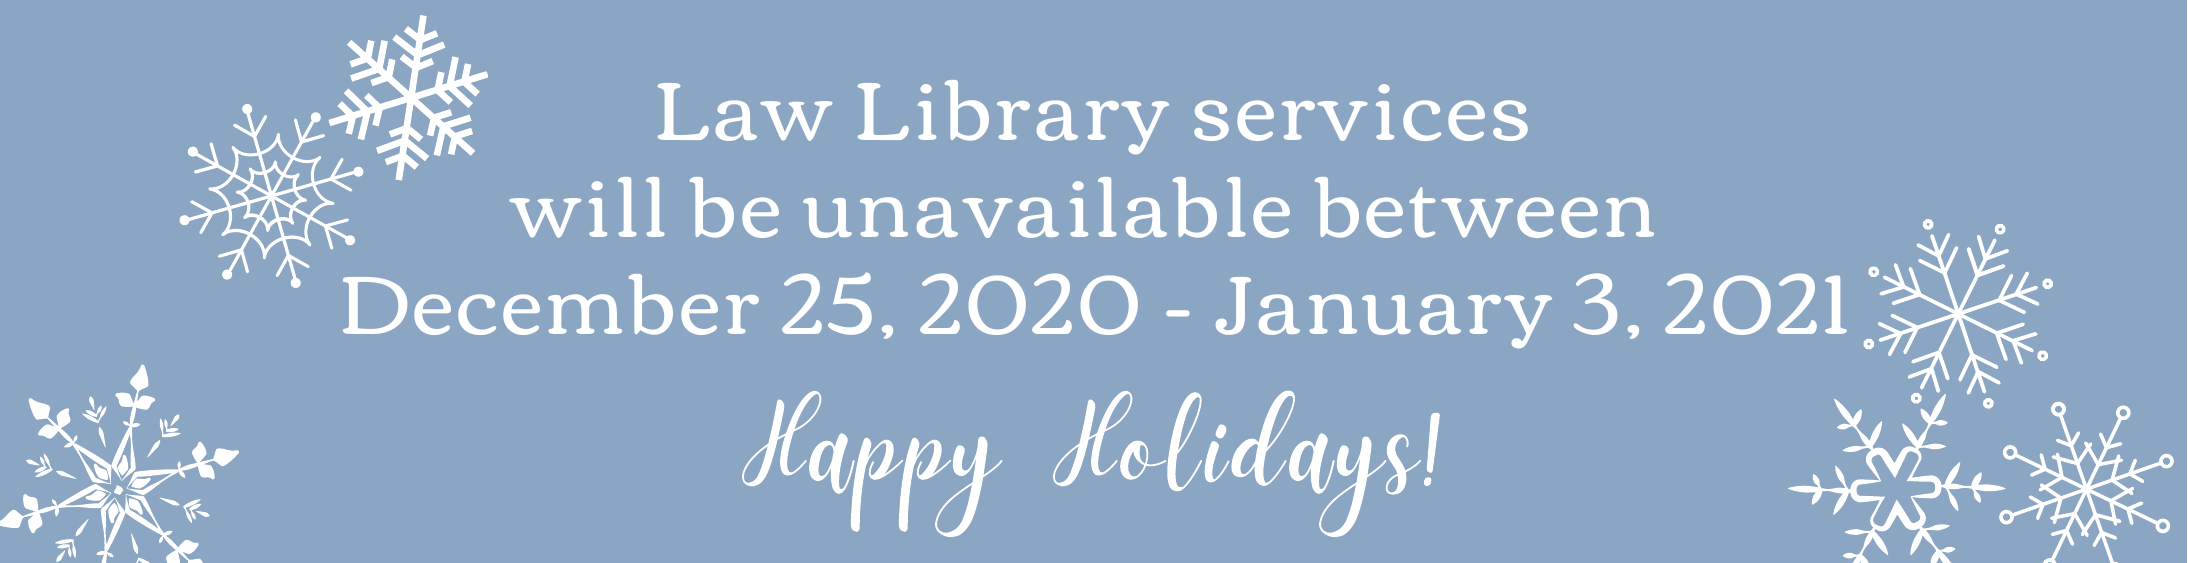 Law Library services available